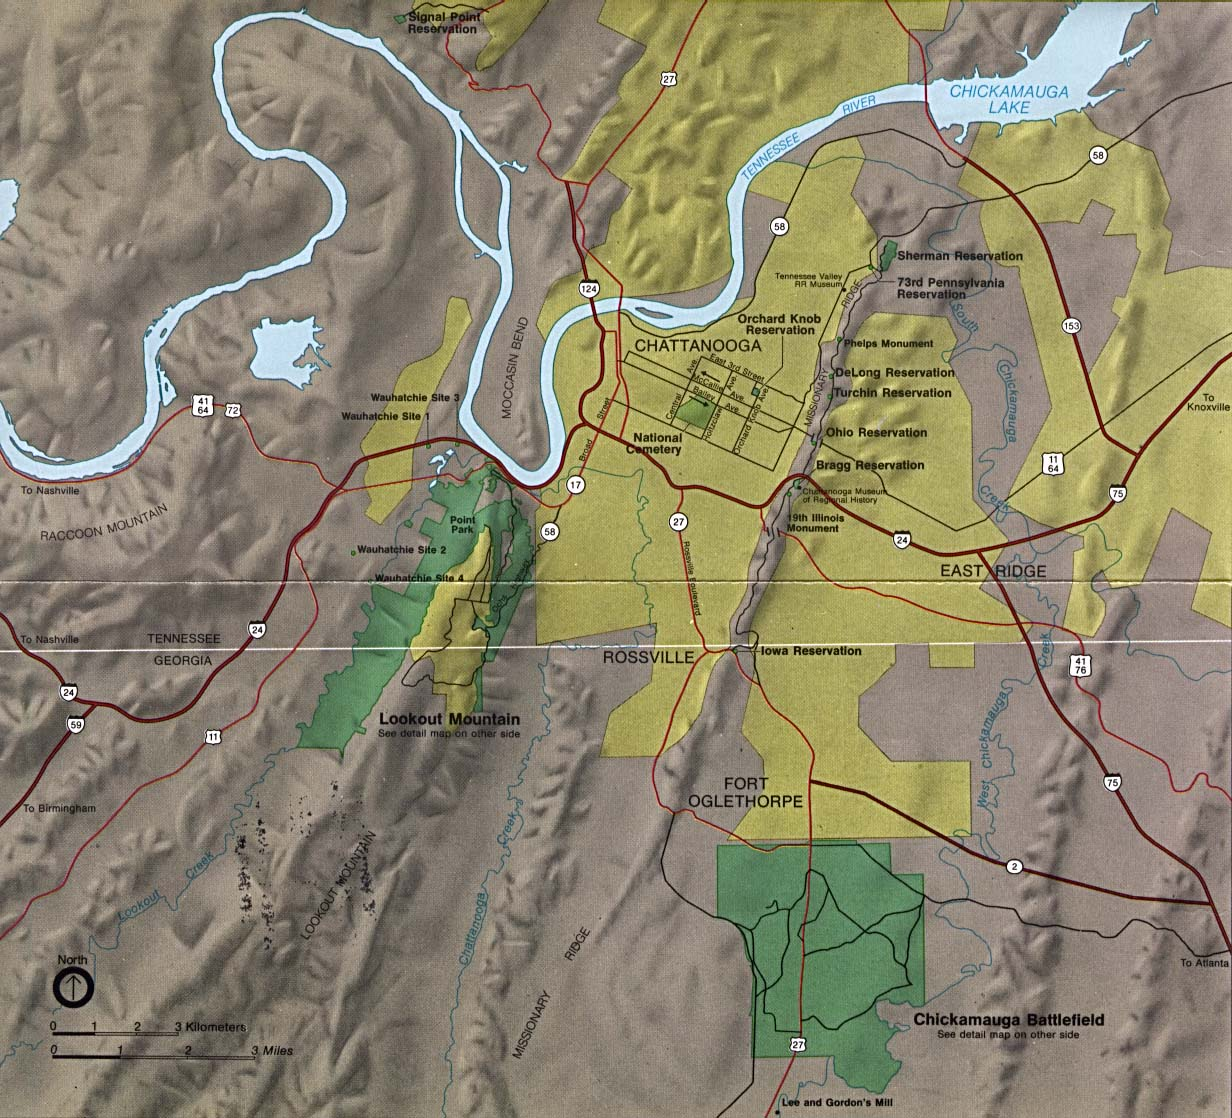 Maps of United States National Parks, Monuments and Historic Sites Chickamauga and Chattanooga National Military Park [Georgia/tennnesee] (Area Map) (267K)